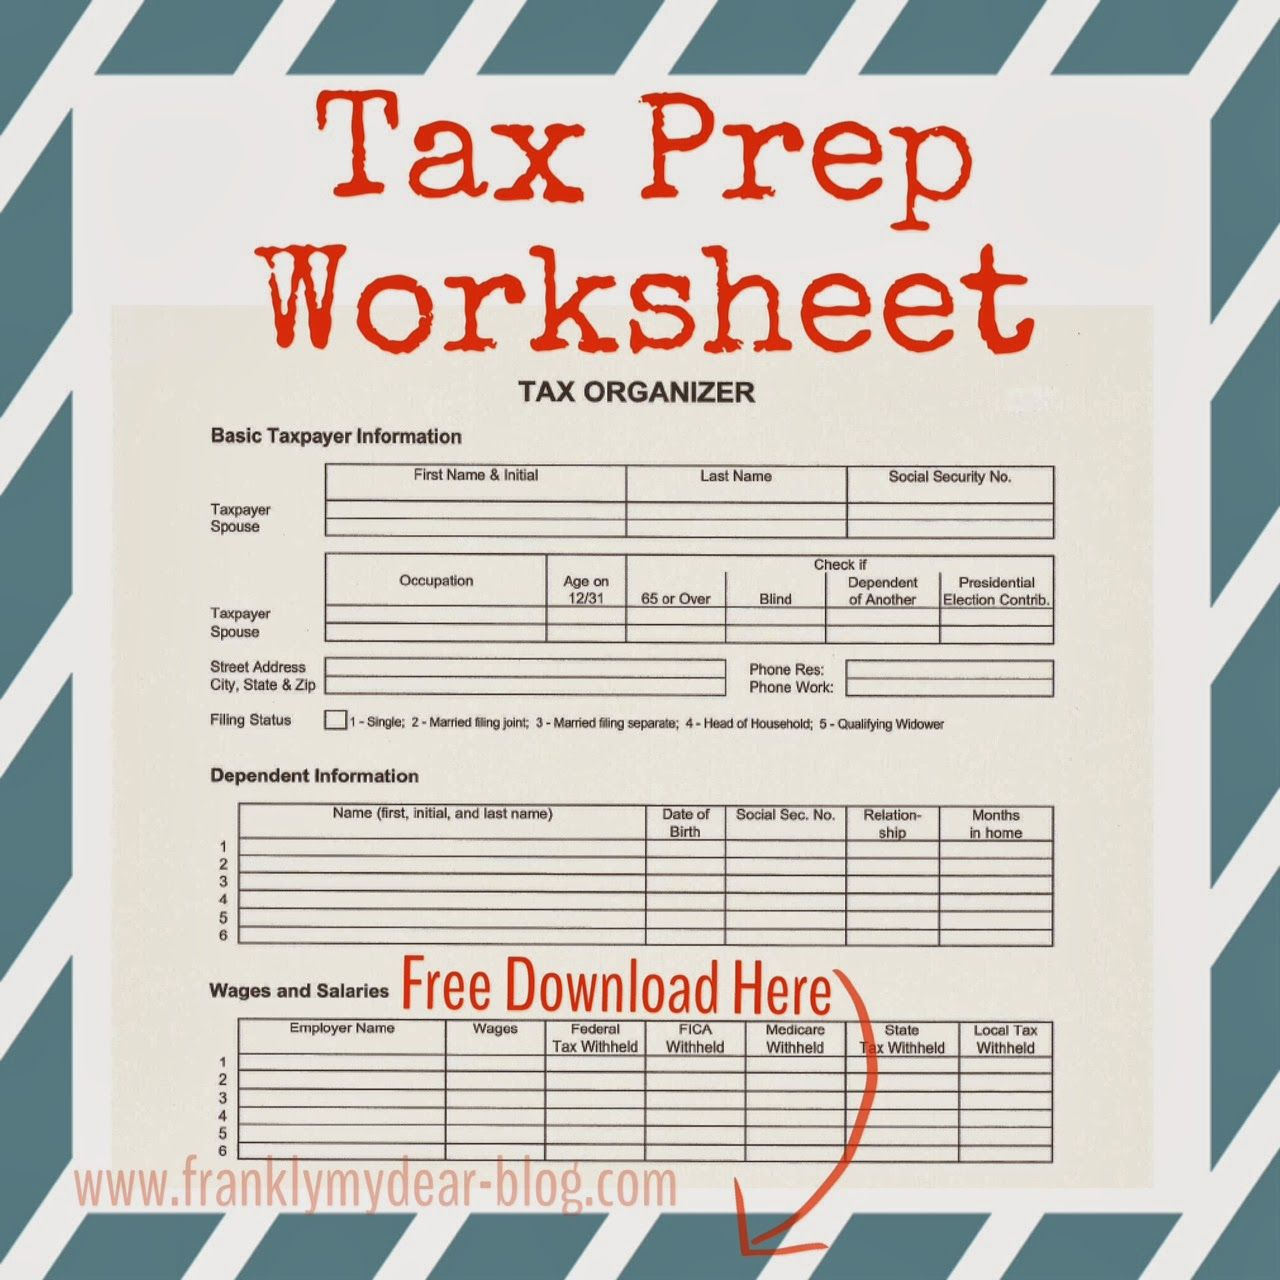 worksheet Itsdeductible Worksheet get a bigger refund with 5 easy ways to maximize your tax deductions the happy handicap blog pinterest and charit